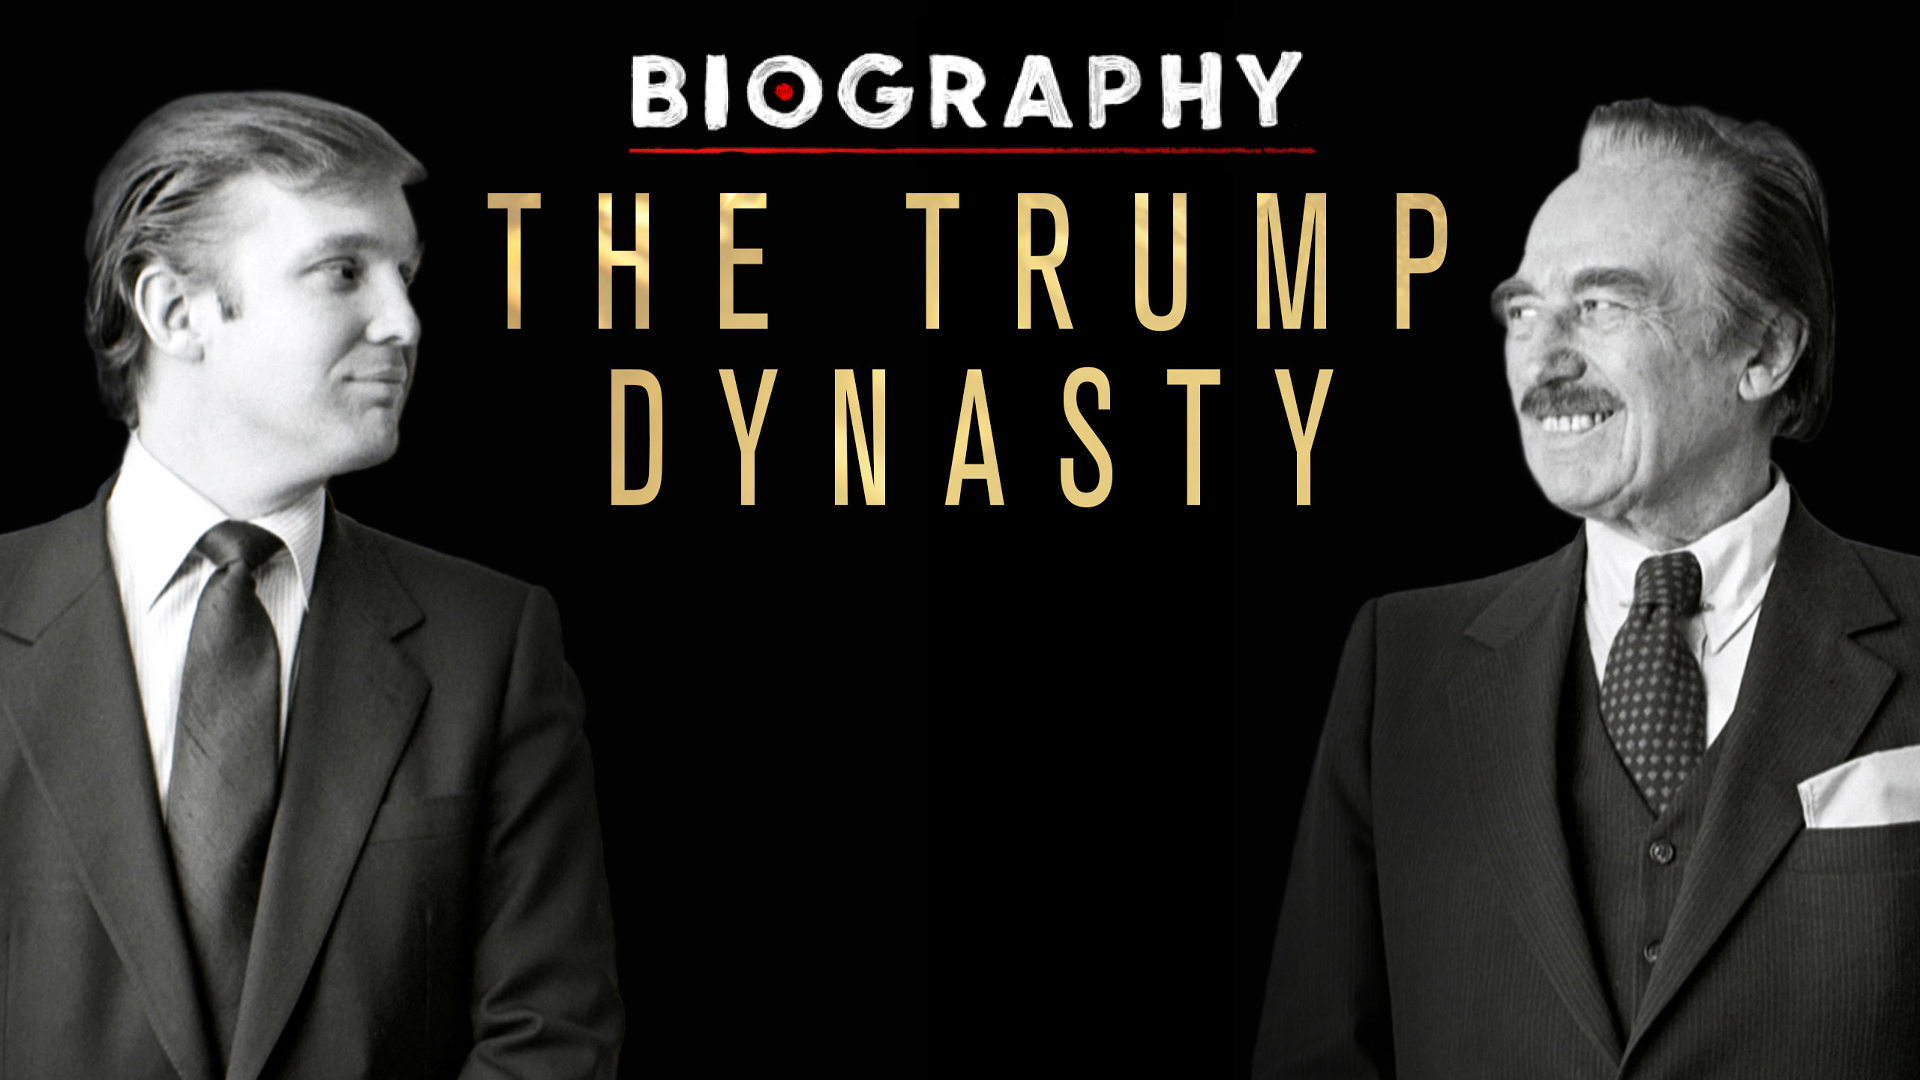 Biography: The Trump Dynasty Season 1